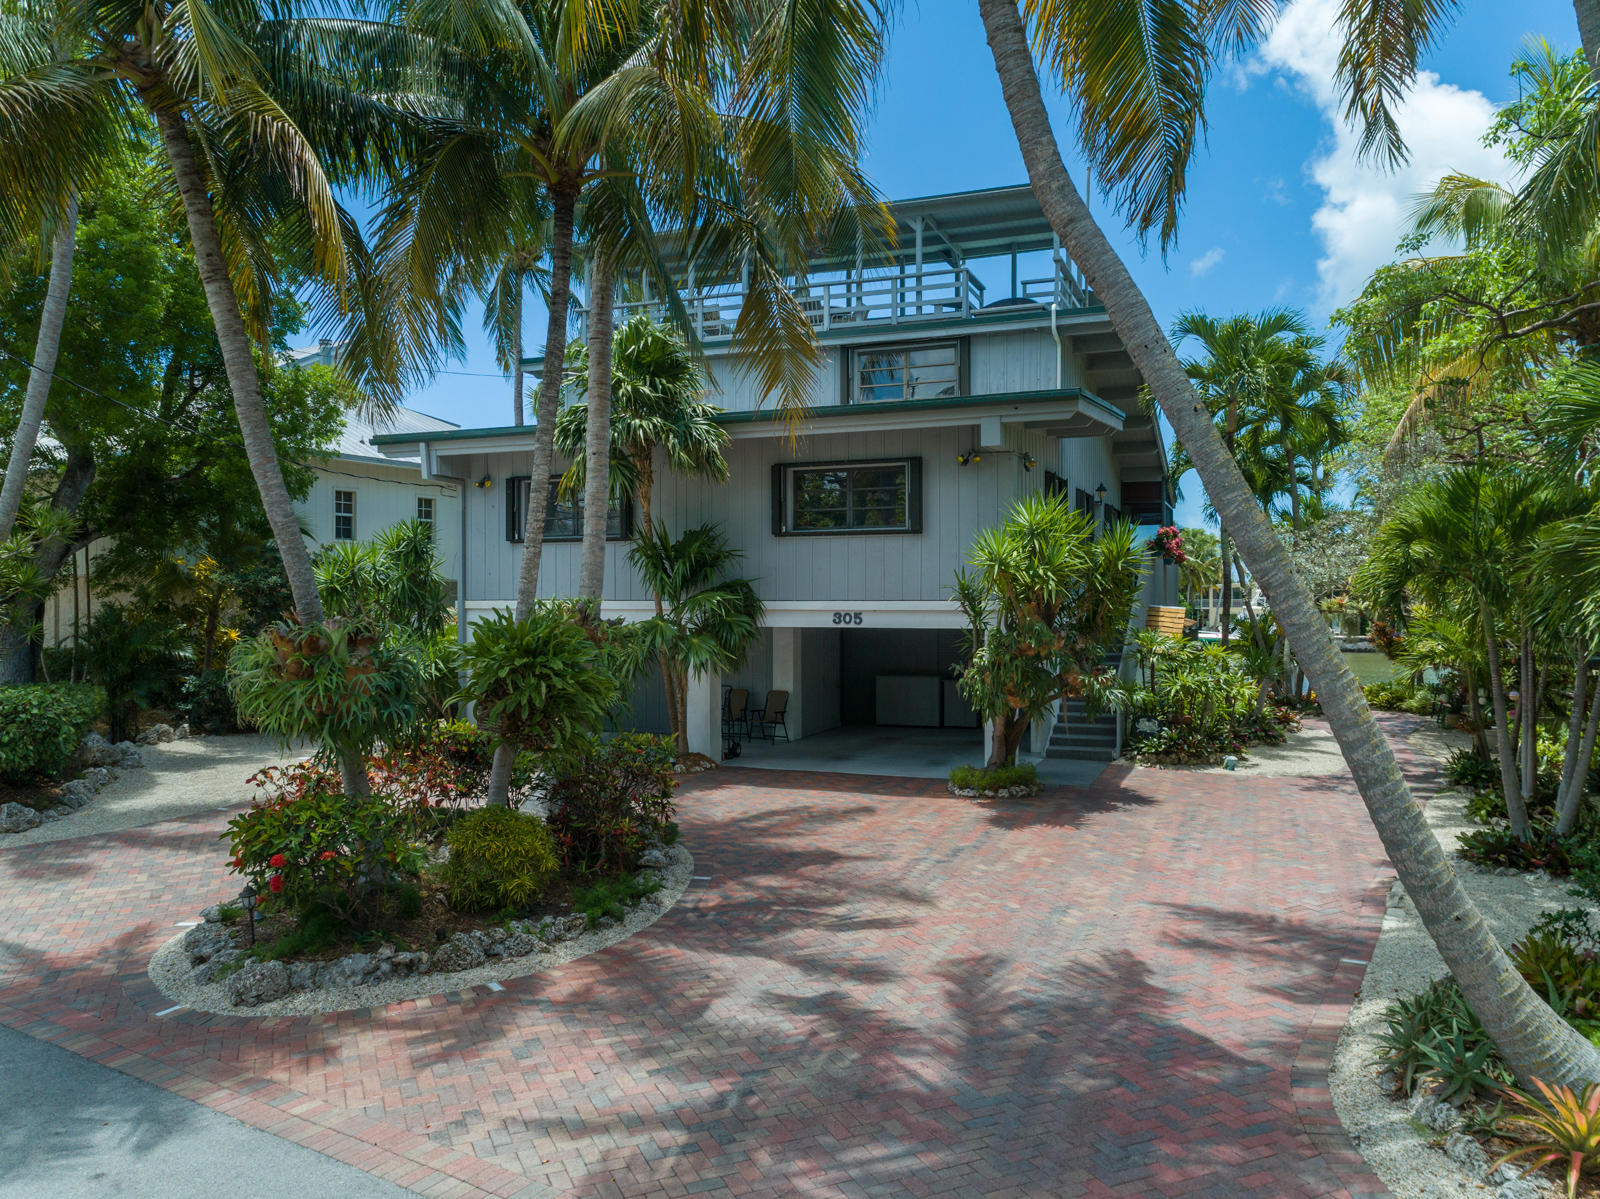 305 North Drive, ISLAMORADA, FL 33036